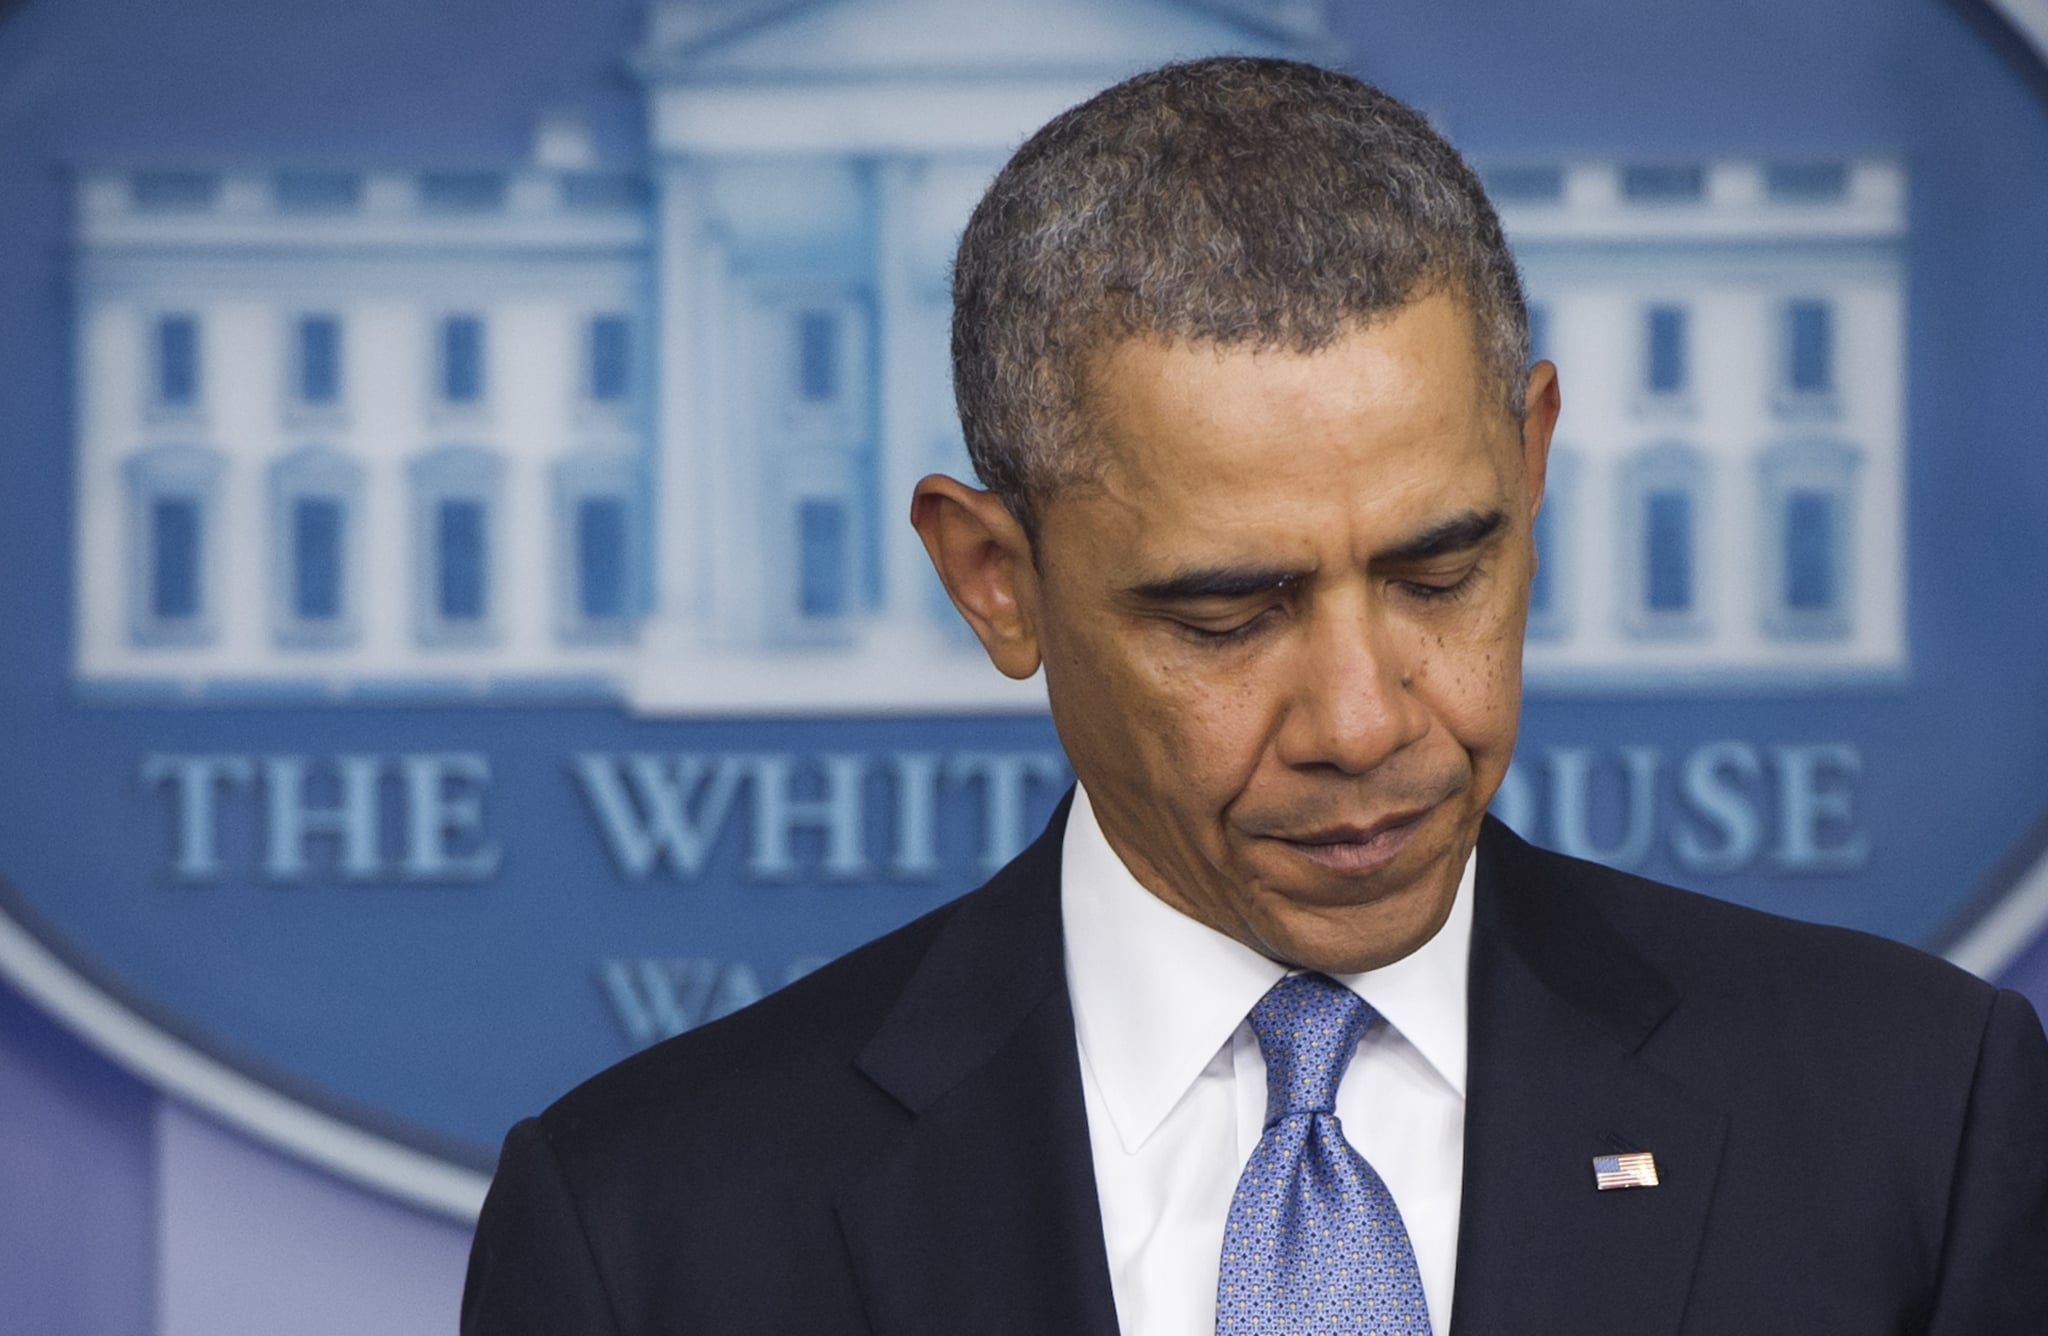 """President Barack Obama also held a press conference on Monday to address the situation in Ukraine. He announced that the US was imposing sanctions on Ukrainian and Russian officials who backed the referendum, including two top Putin aides. He said, """"Today's actions send a strong message to the Russian government that there are consequences for their actions that violate the sovereignty and territorial integrity of Ukraine, including their actions supporting the illegal referendum for Crimean separation."""""""